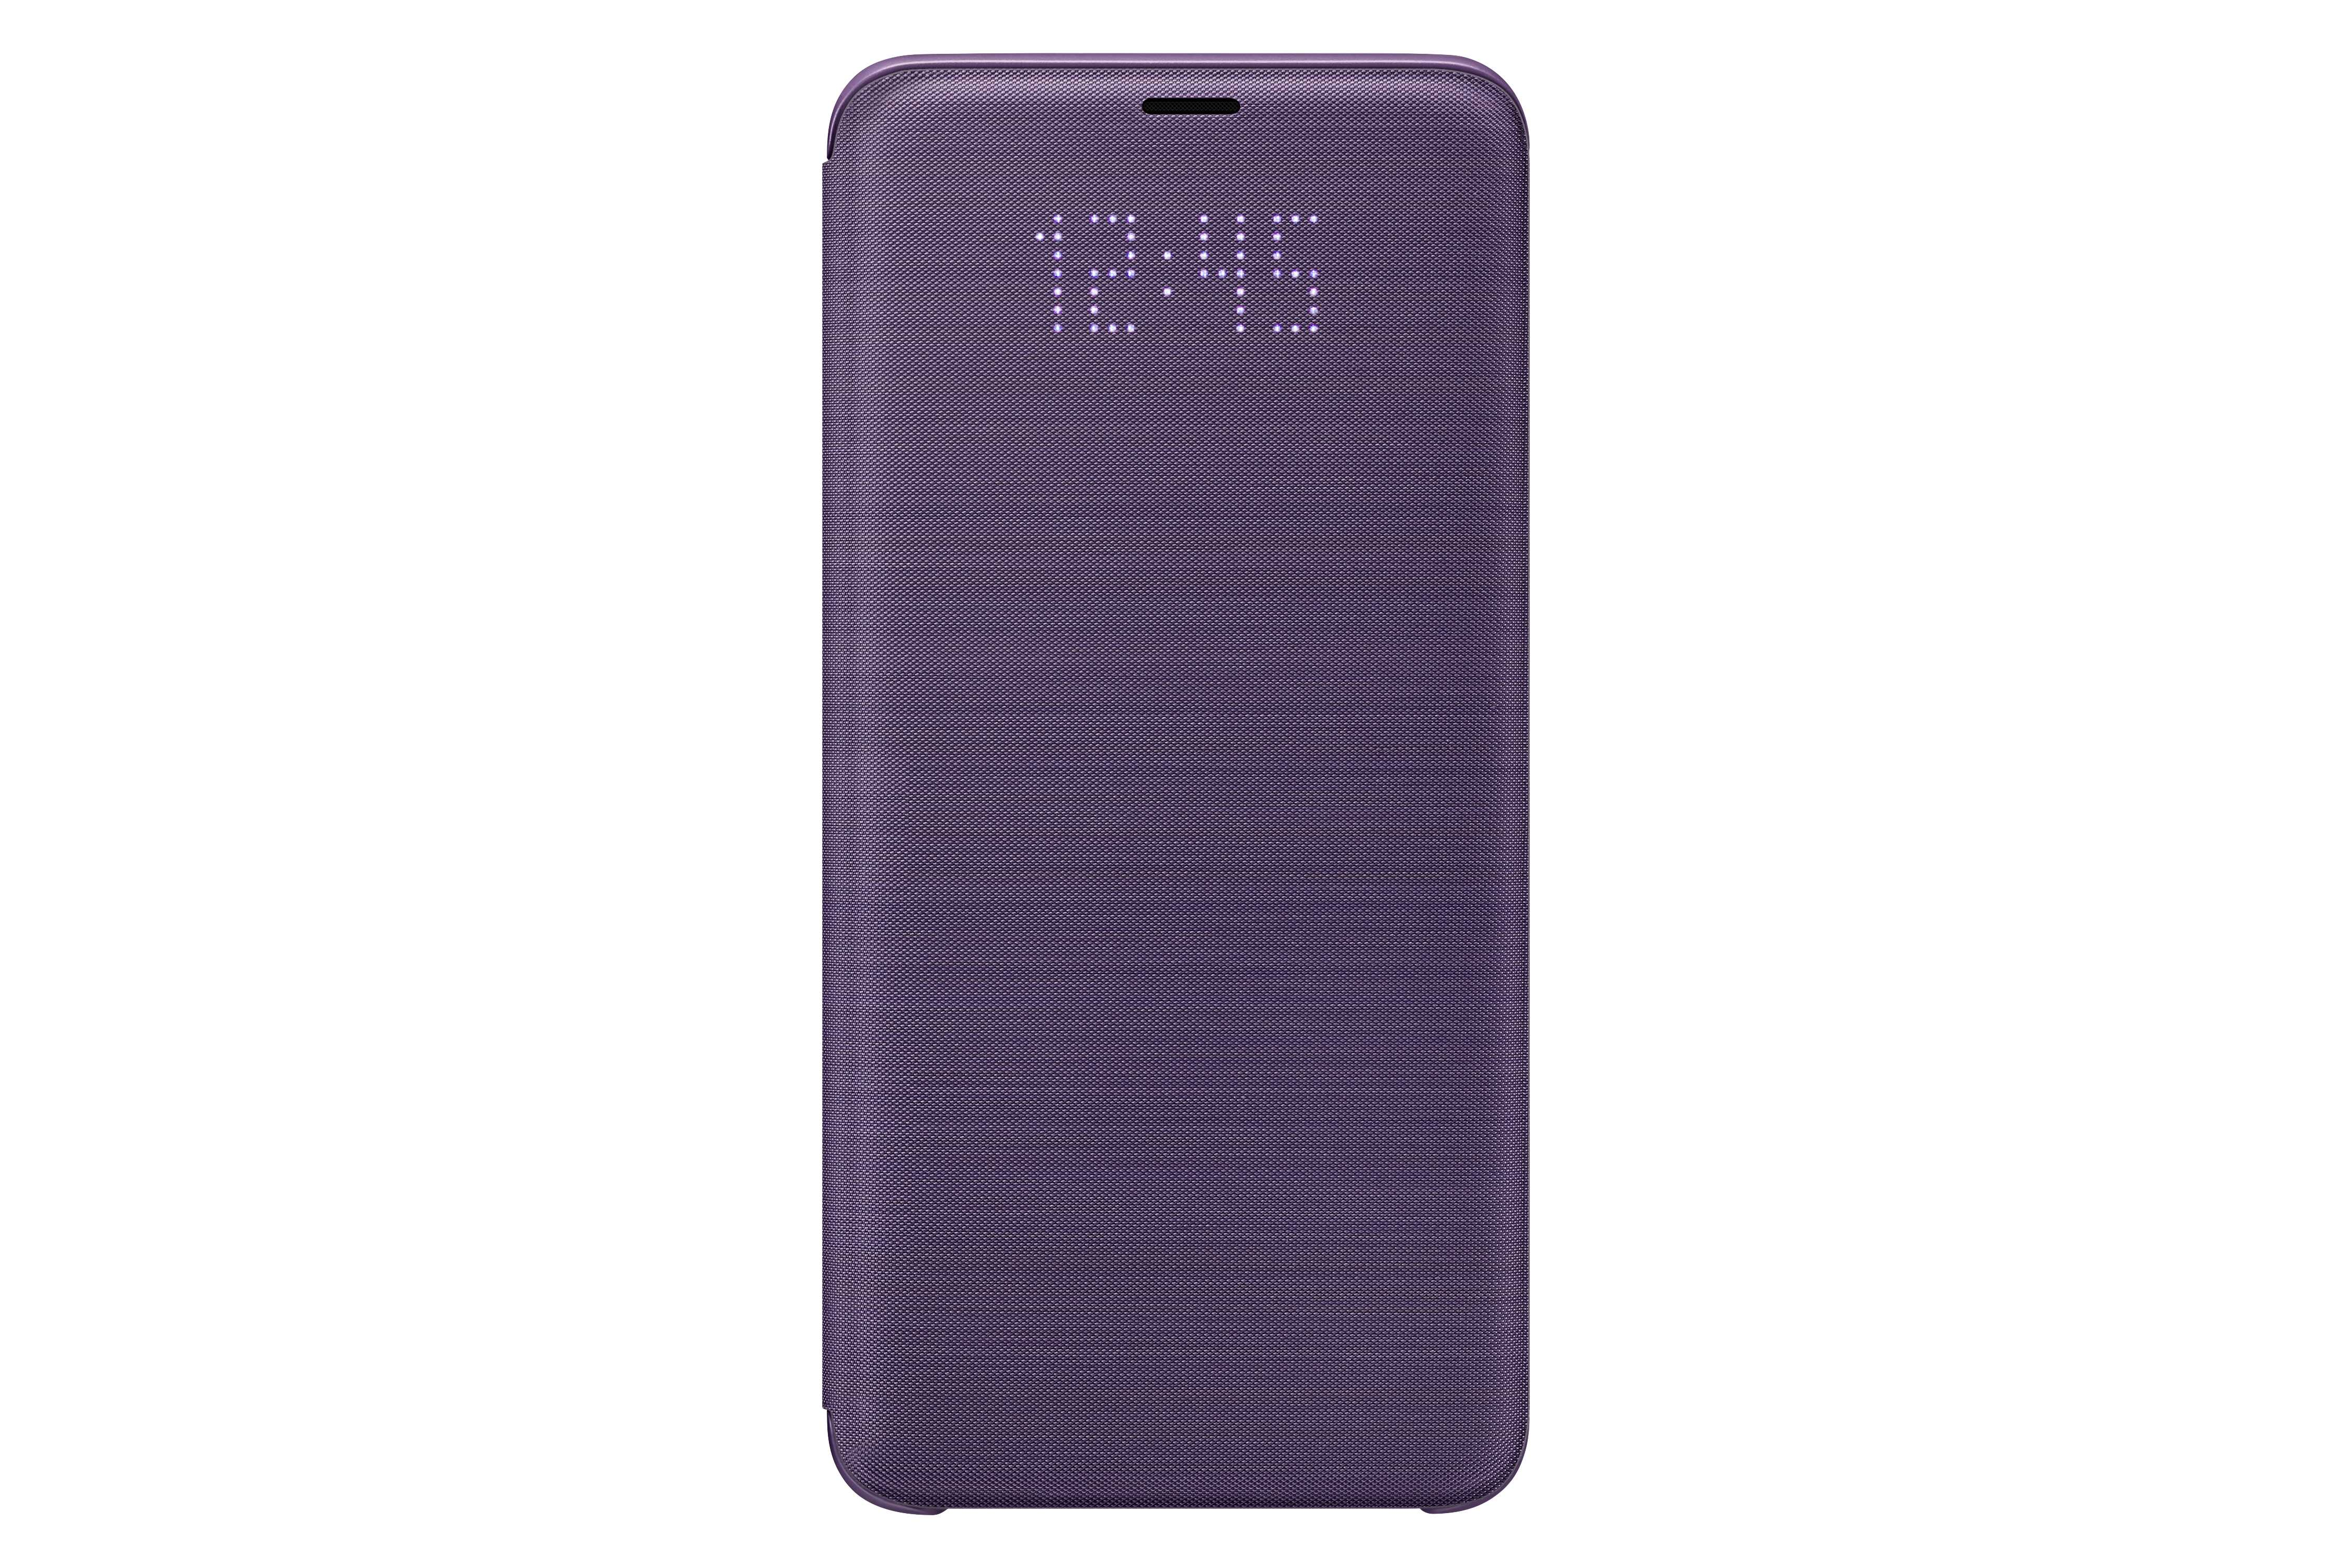 EF-NG965PVEGWW LED View Cover - Purple